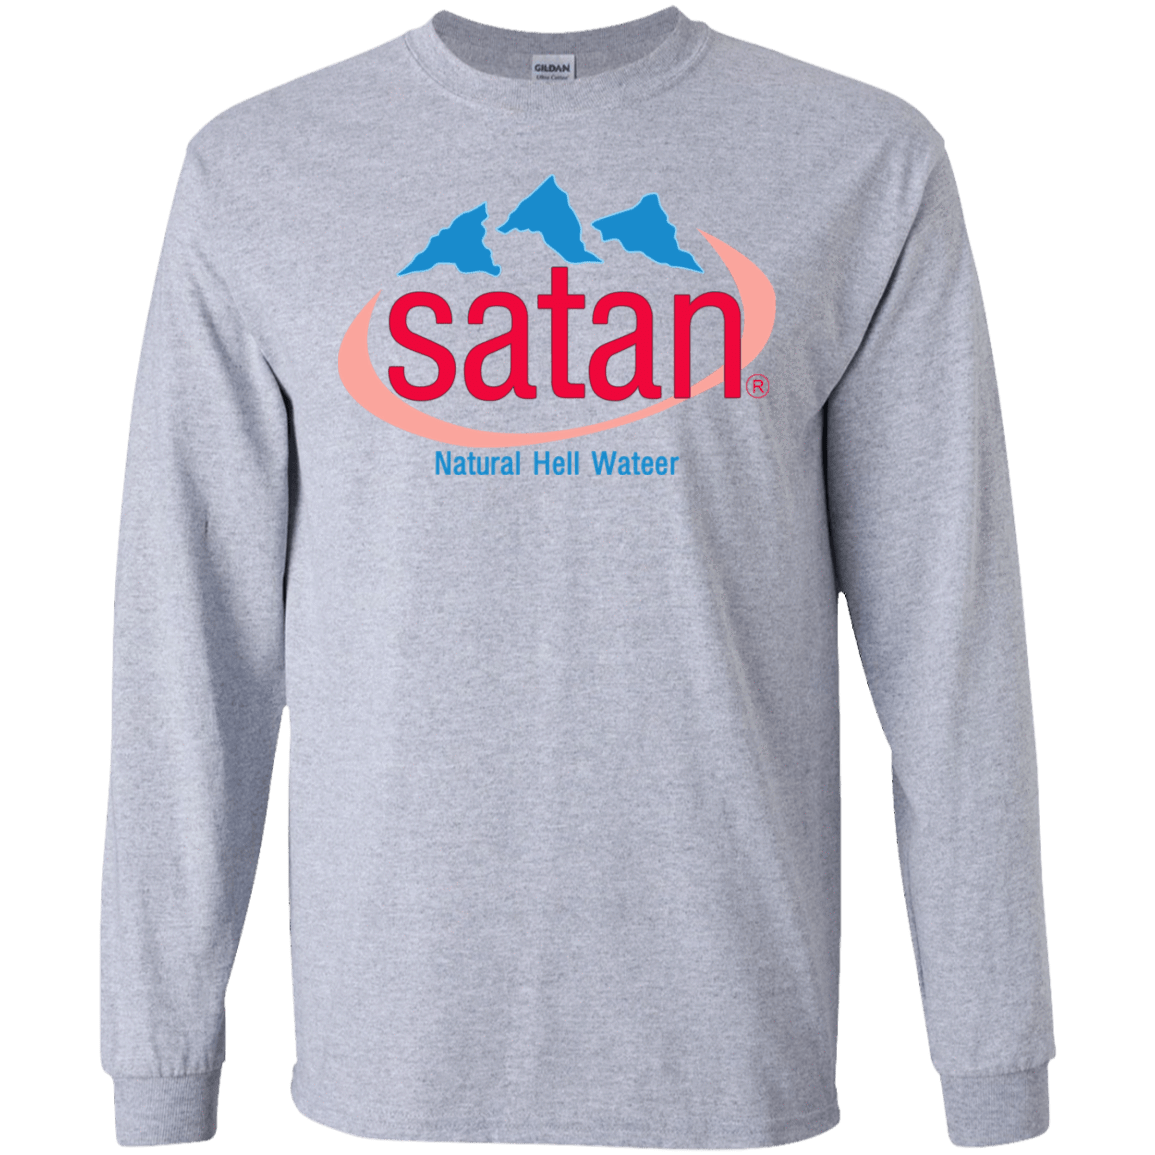 Satan: Natural Hell Water 30-188-73057073-335 - Tee Ript